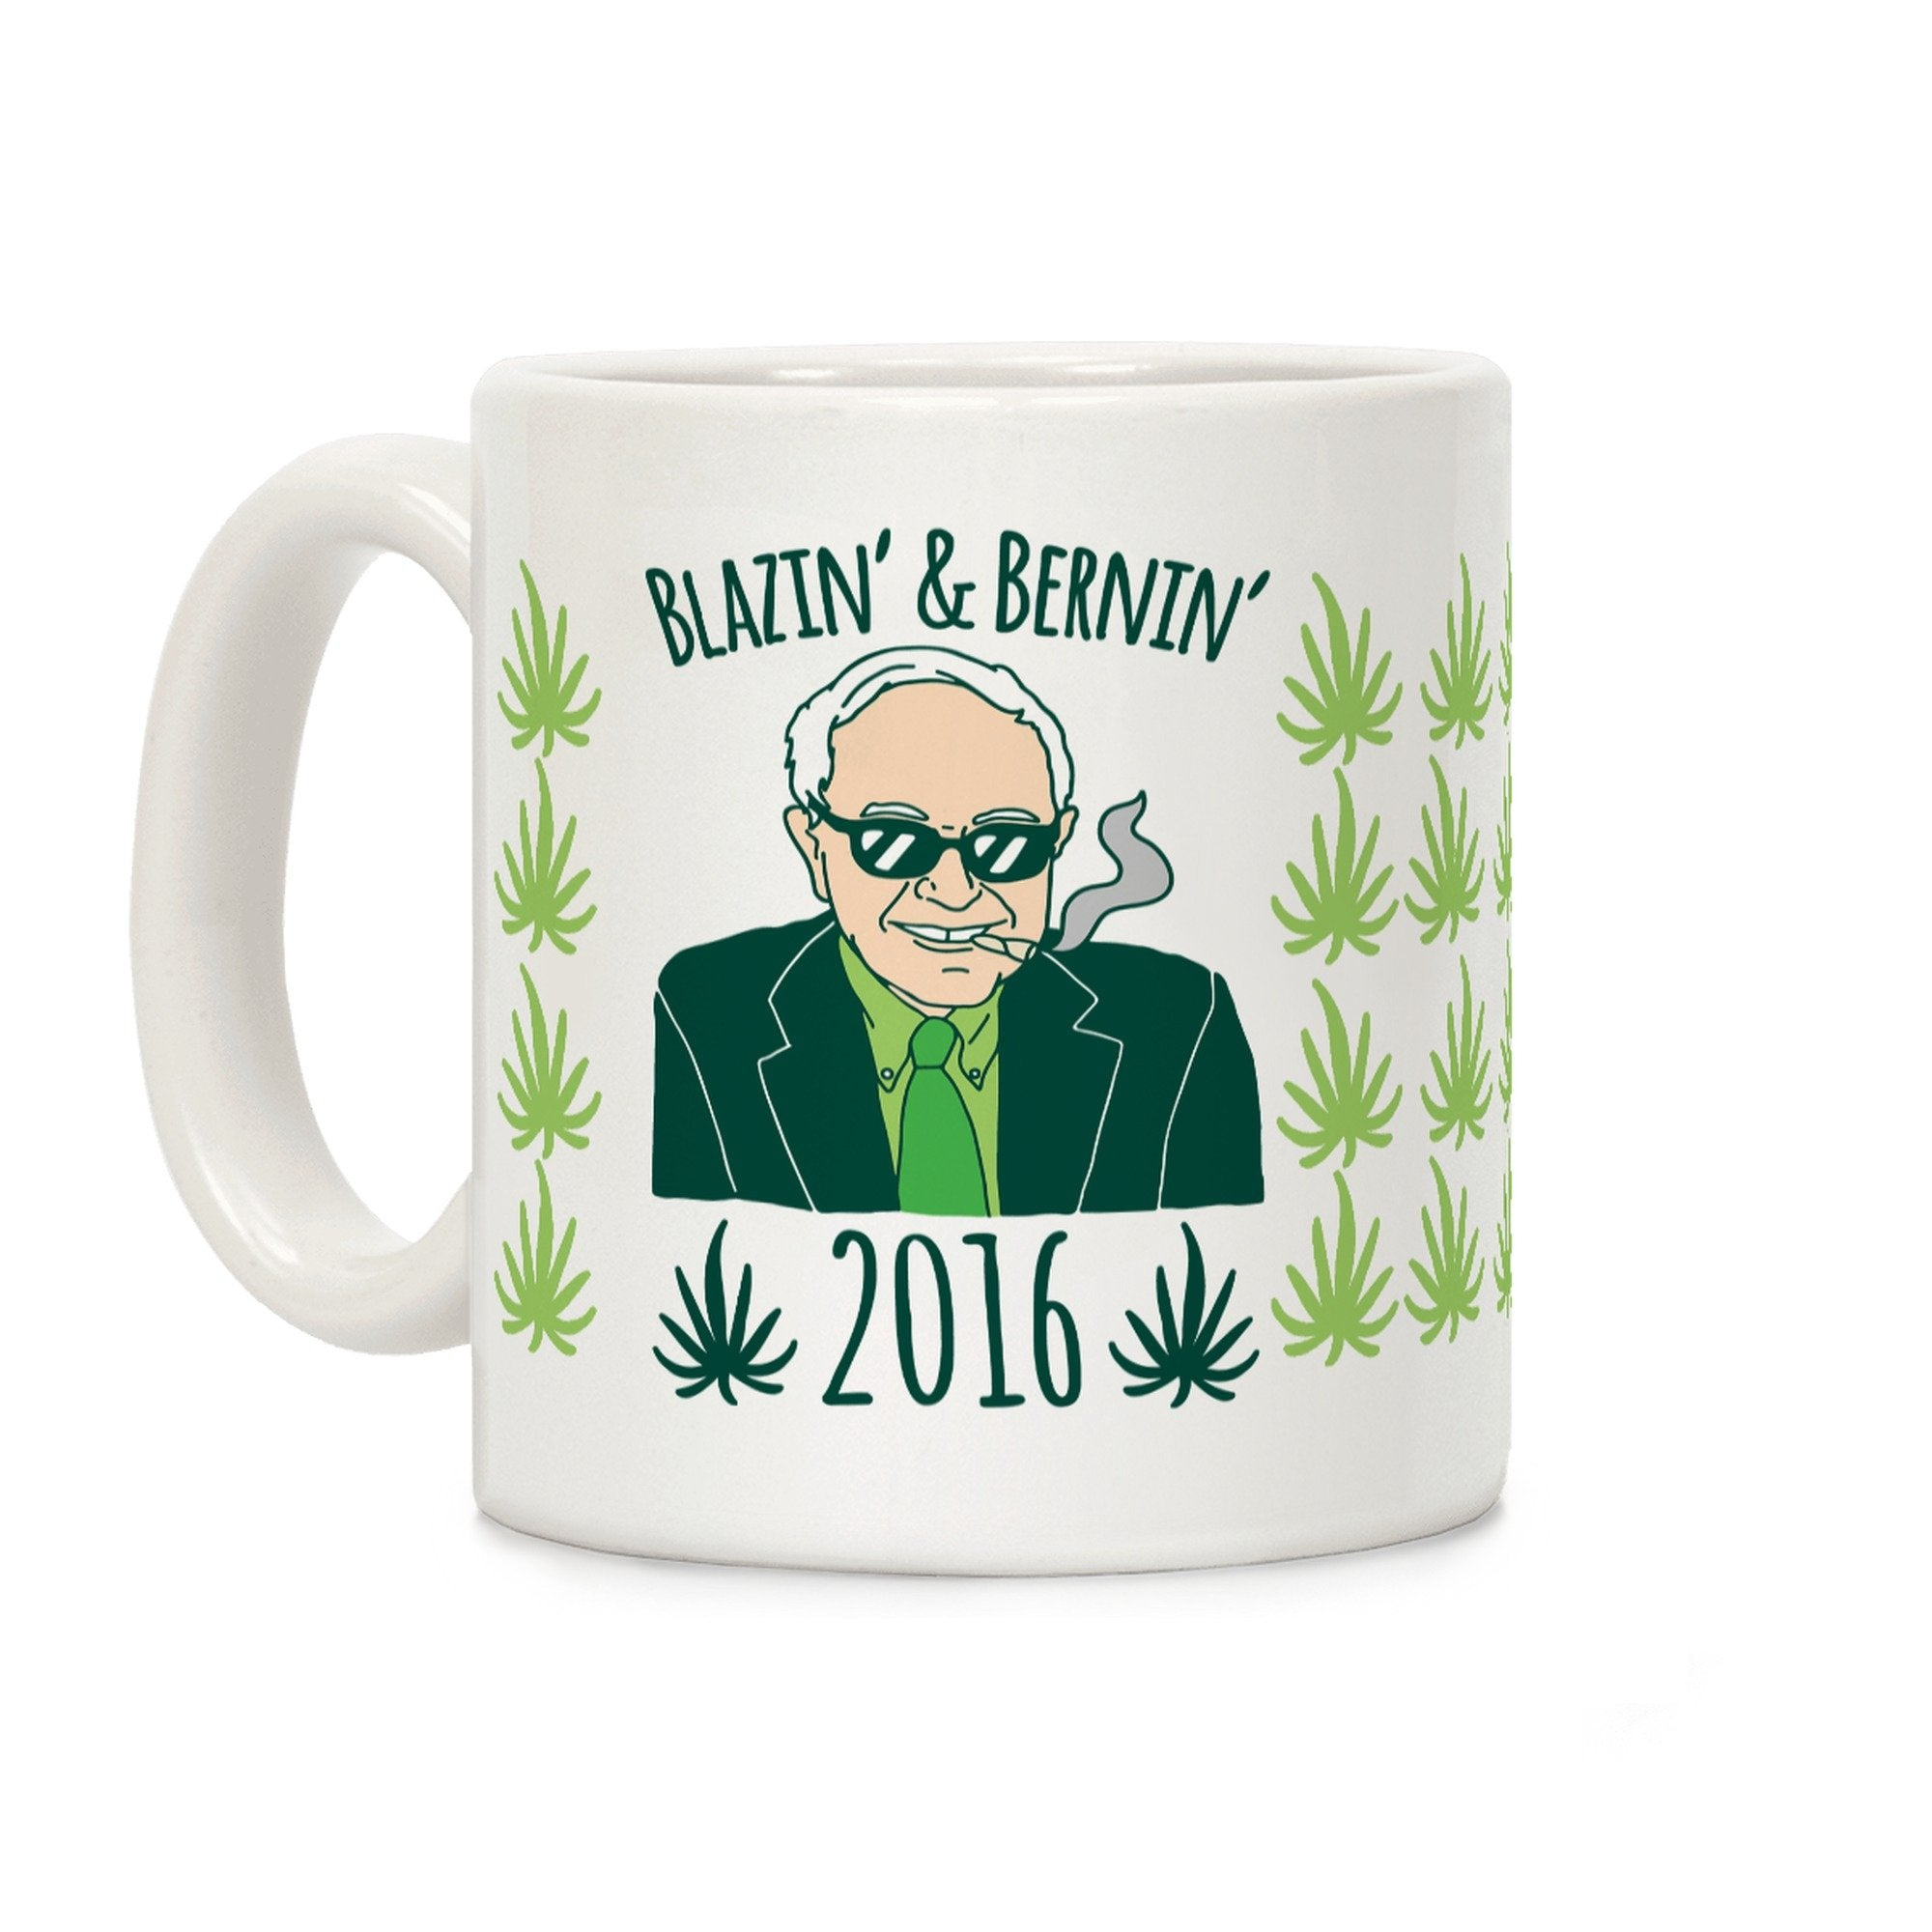 Blazin' And Bernin' 2016 Ceramic Coffee Mug by LookHUMAN